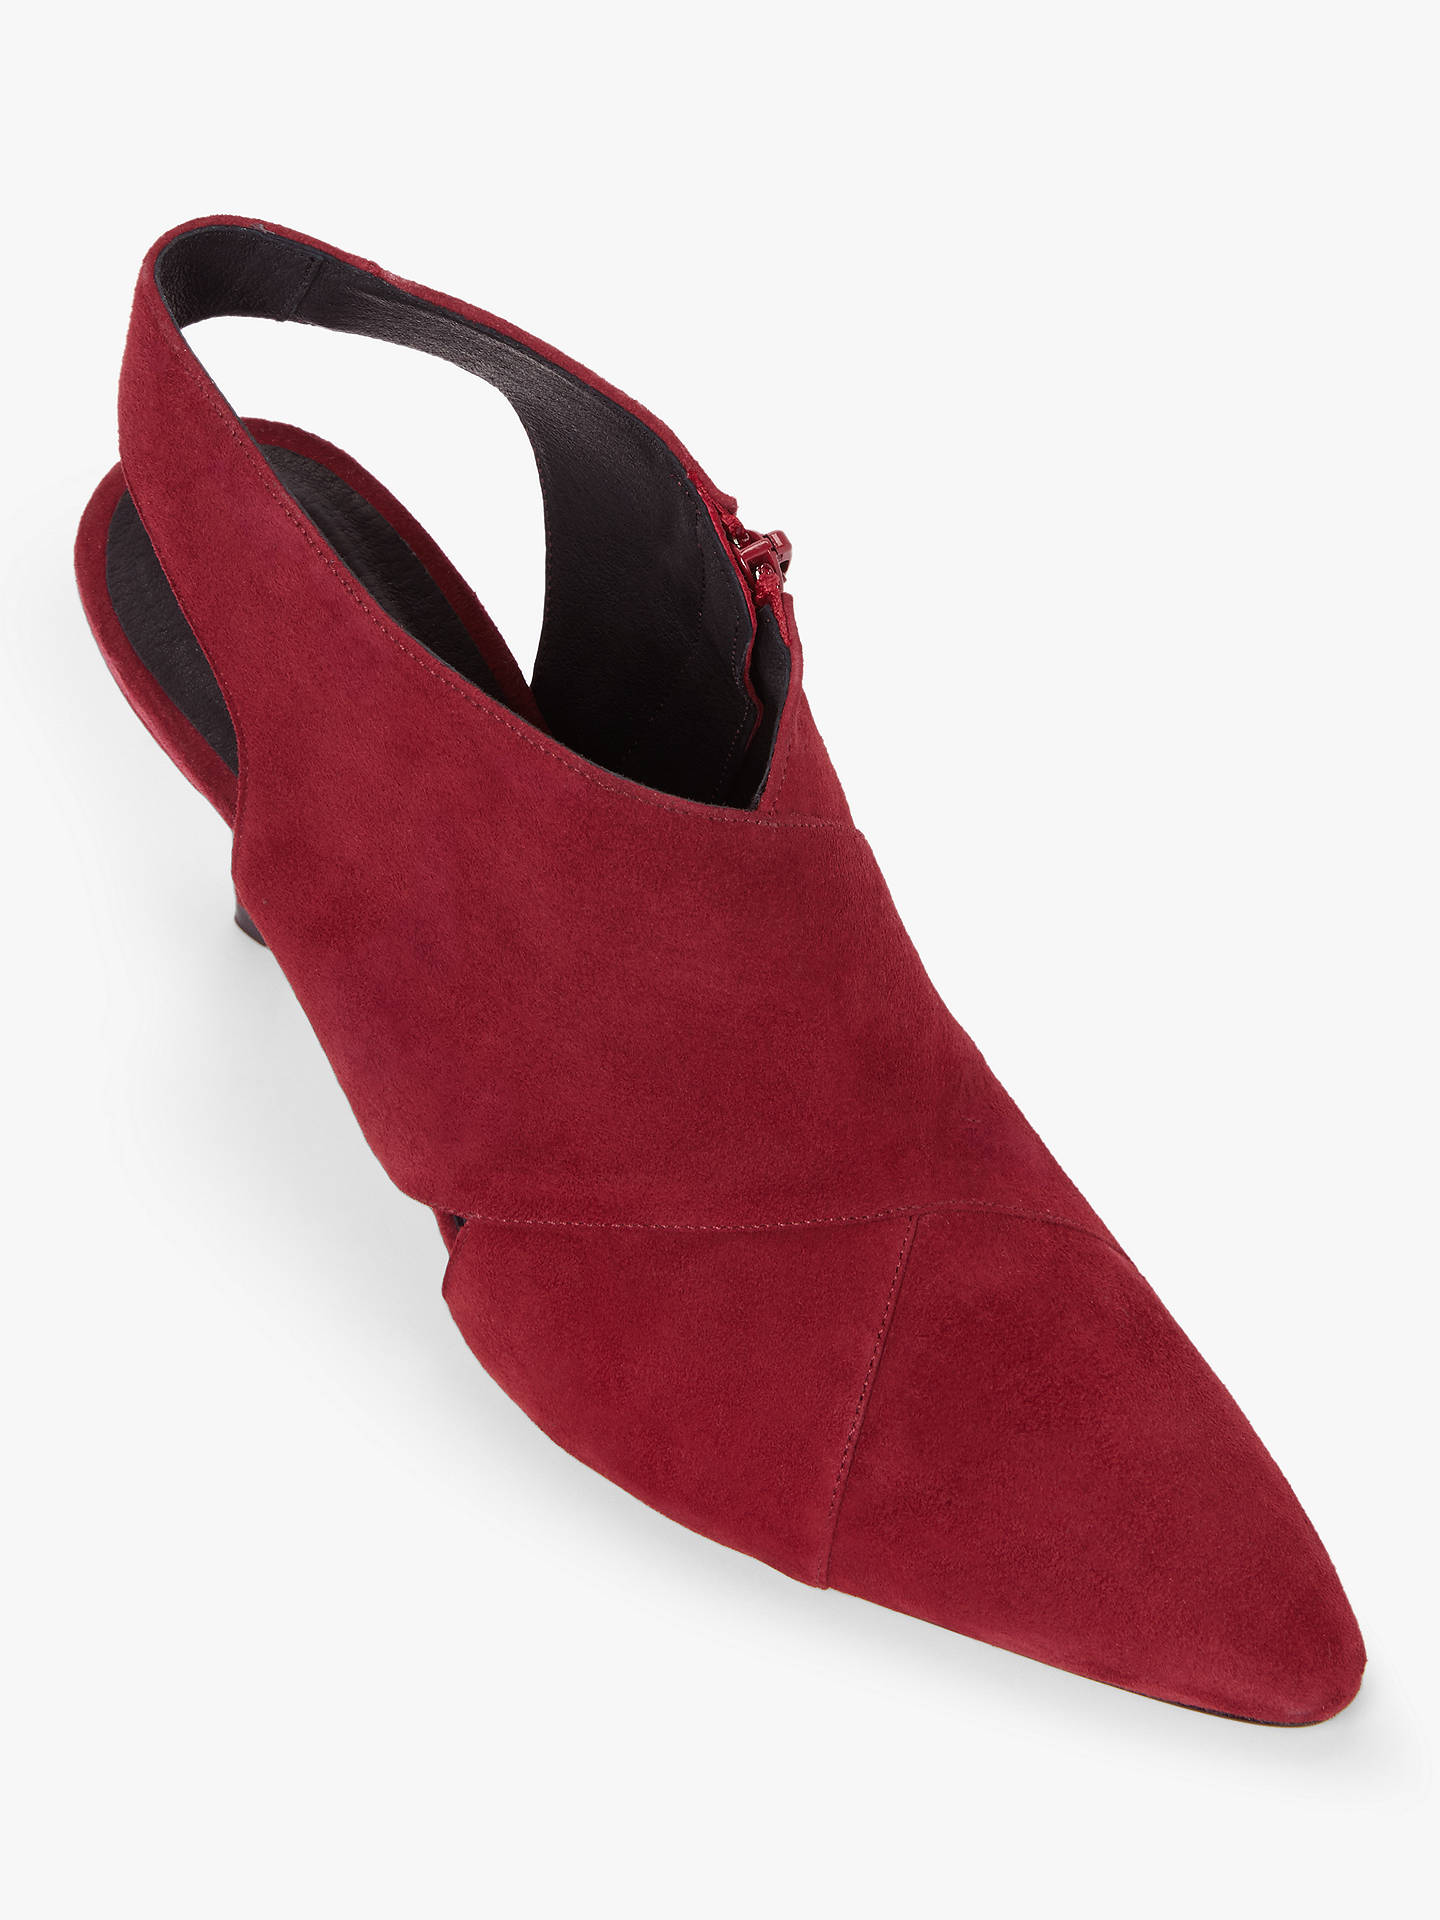 Buy John Lewis & Partners Wanda Suede Slingback Shoe Boots, Red, 4 Online at johnlewis.com